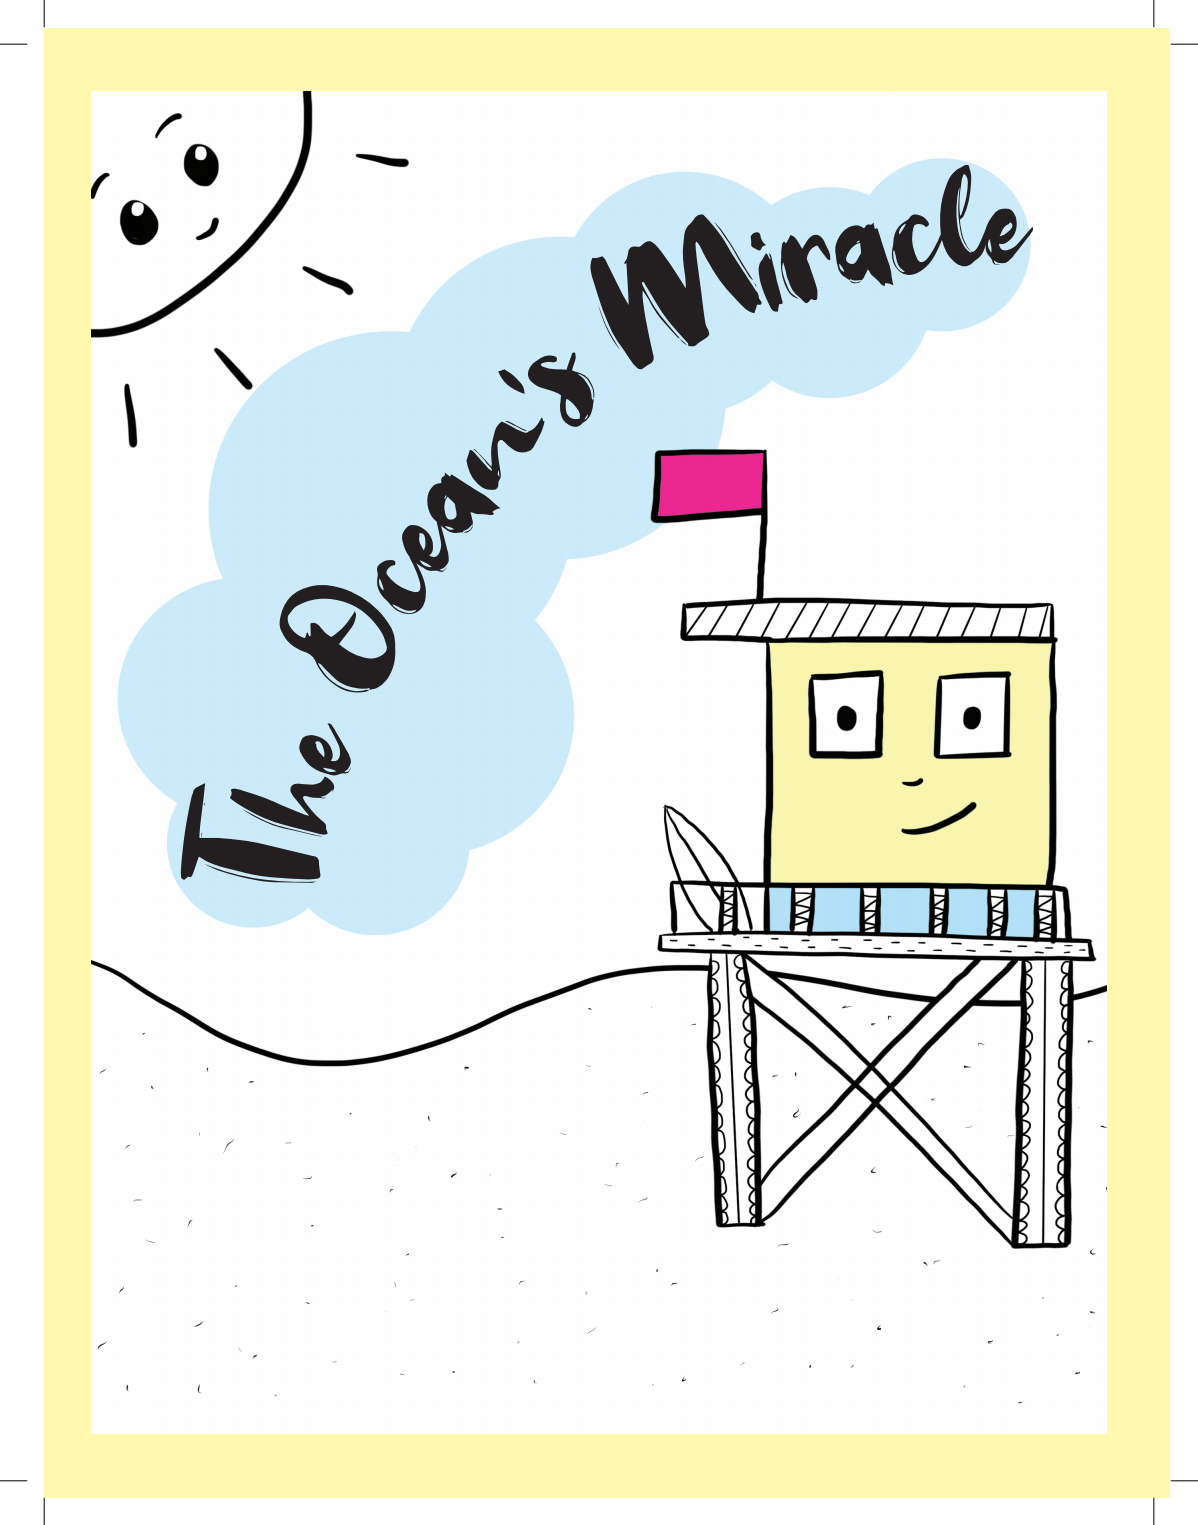 The Ocean's Miracle resize for 8,5x11